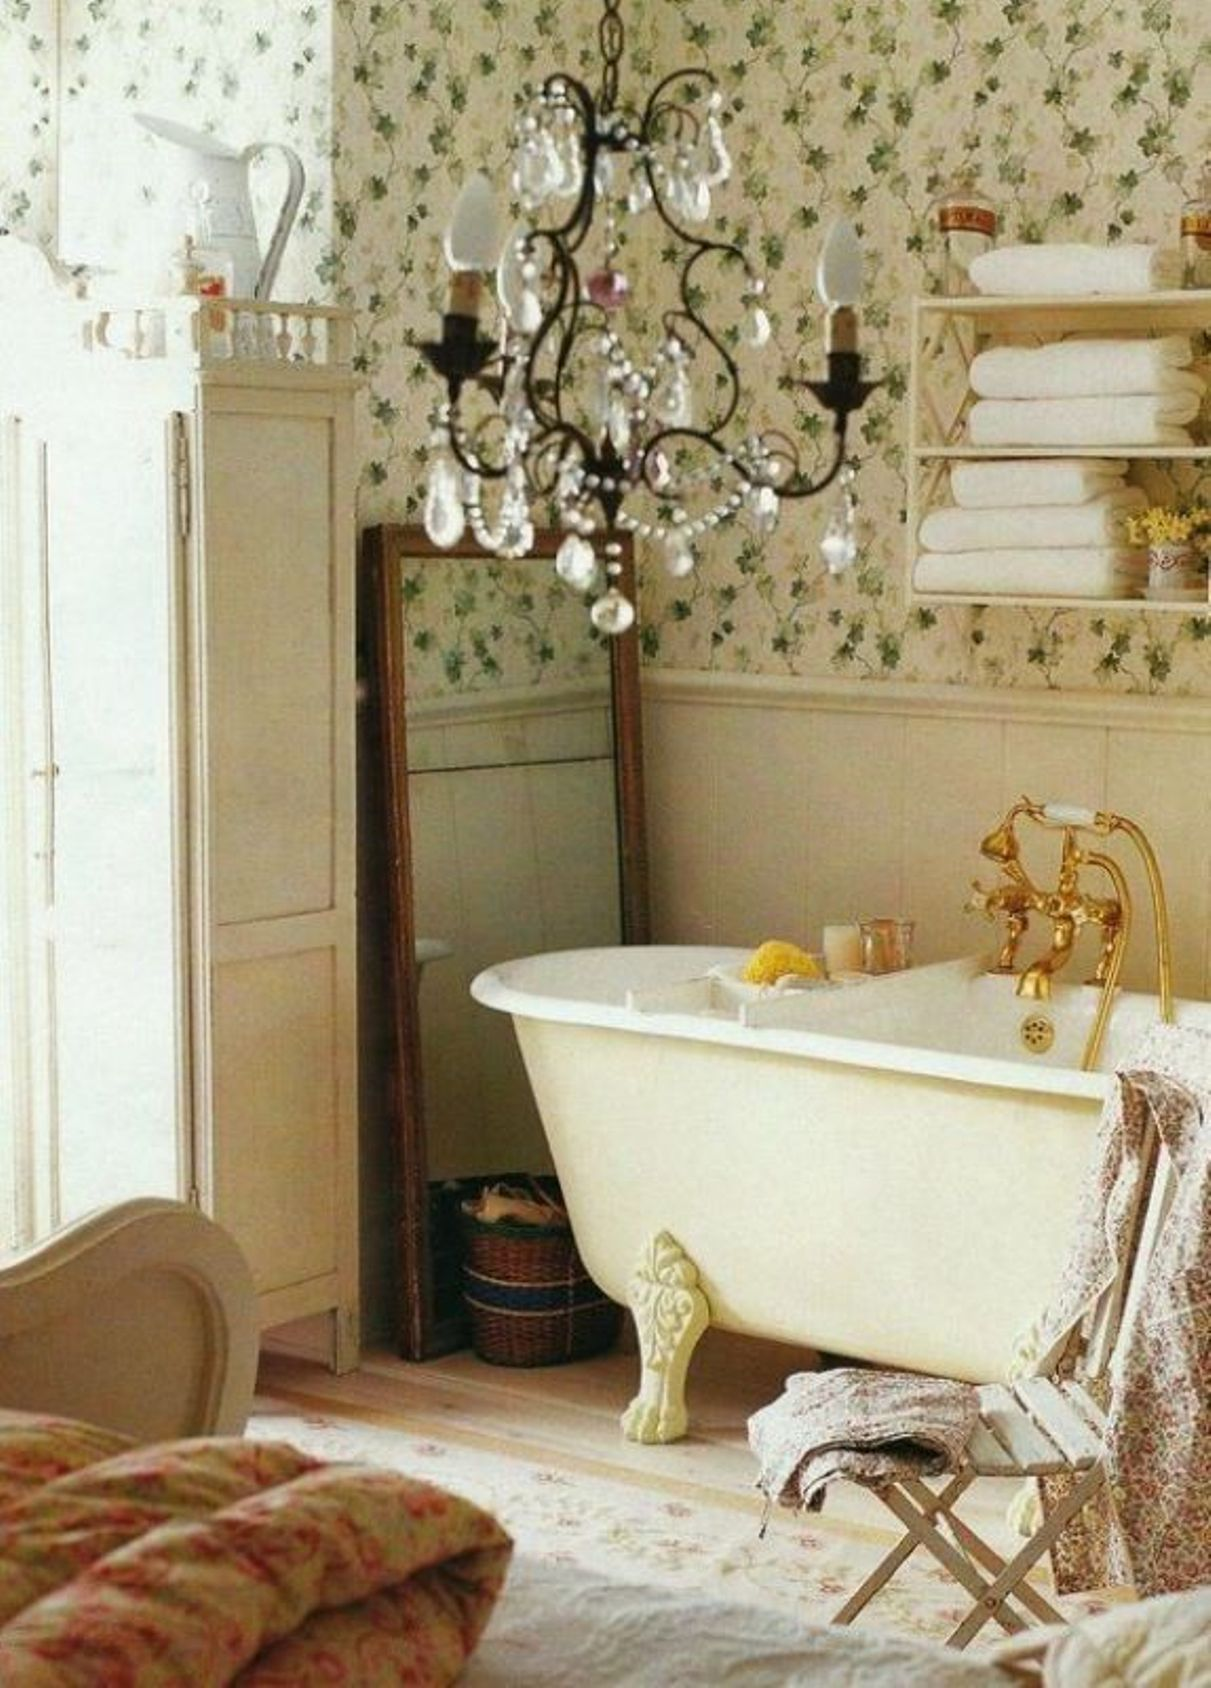 shabby-chic-style-bathroom-with-wainscoting-and-wallpaper